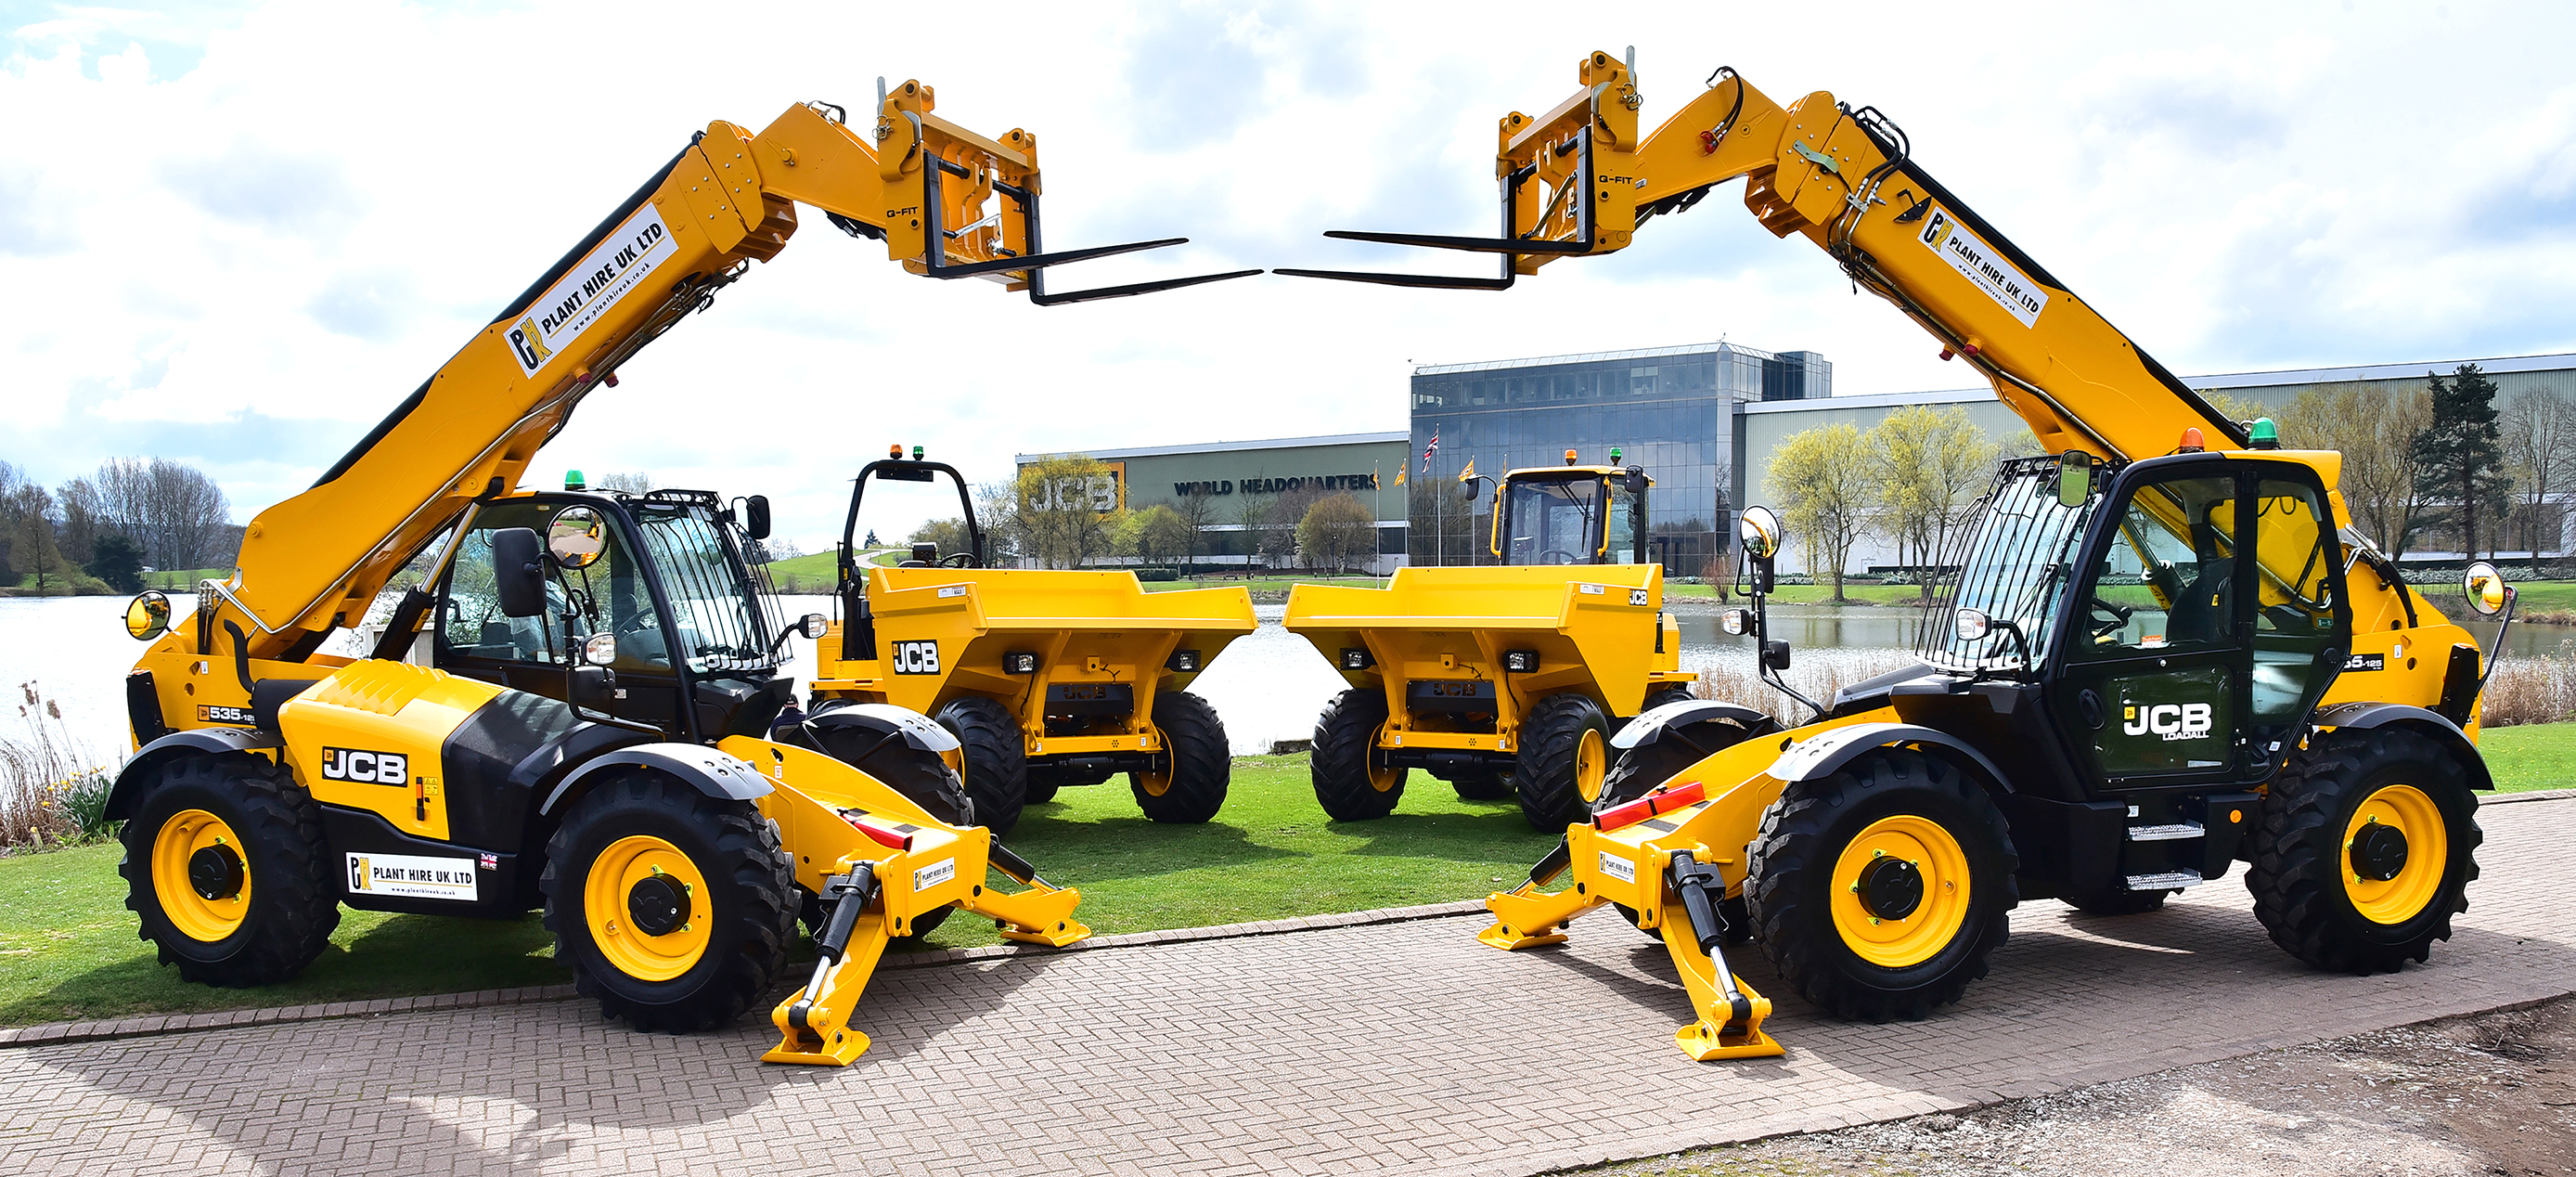 Plant Hire UK JCB machine order